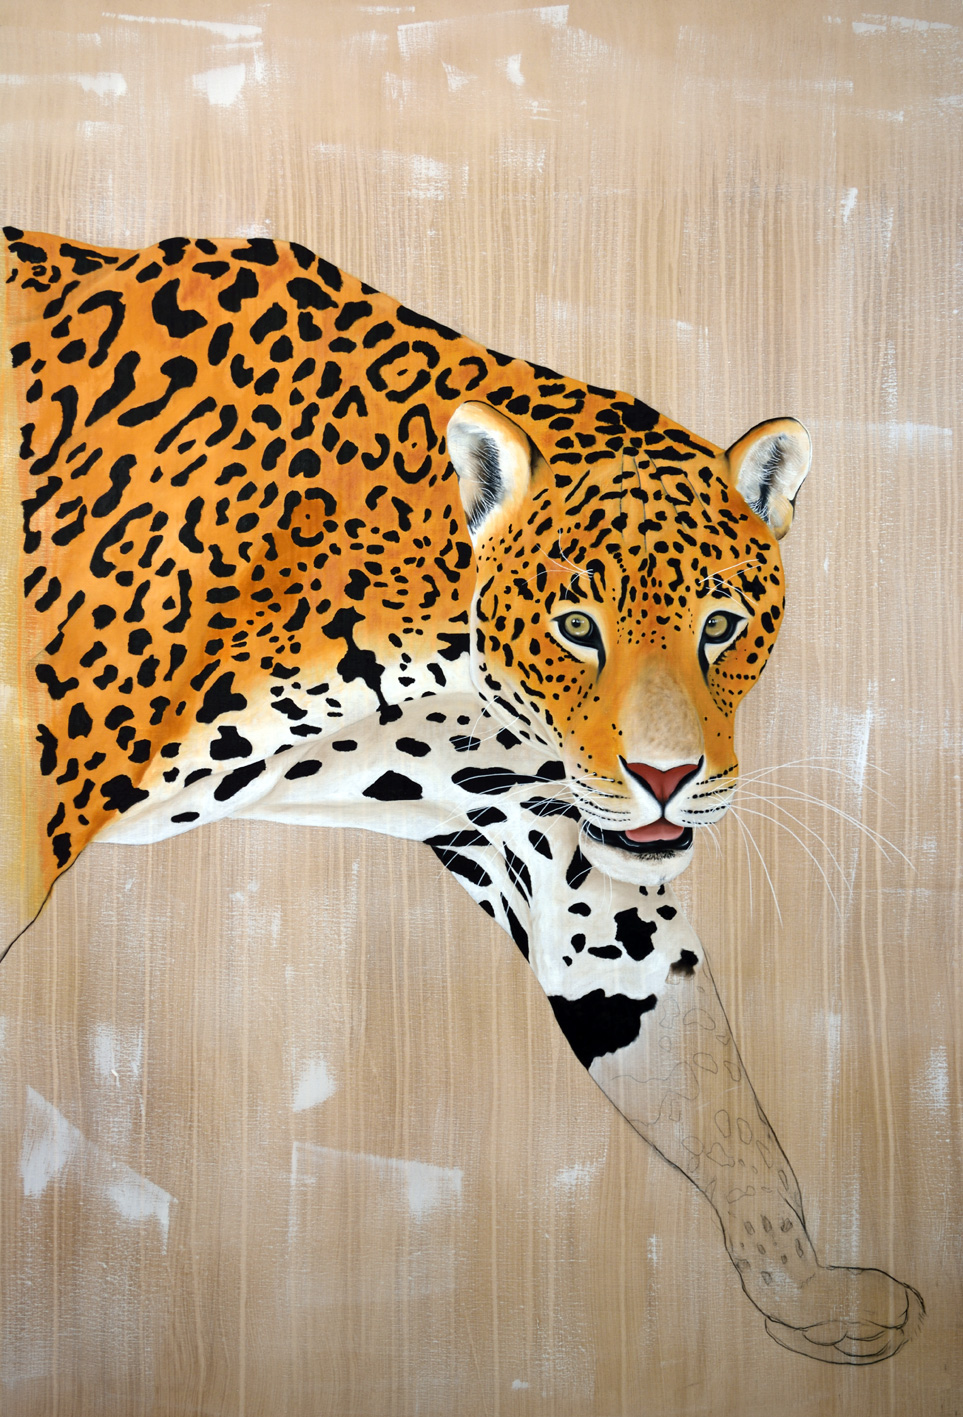 PANTHERA-ONCA divers Thierry Bisch Contemporary painter animals painting art decoration nature biodiversity conservation